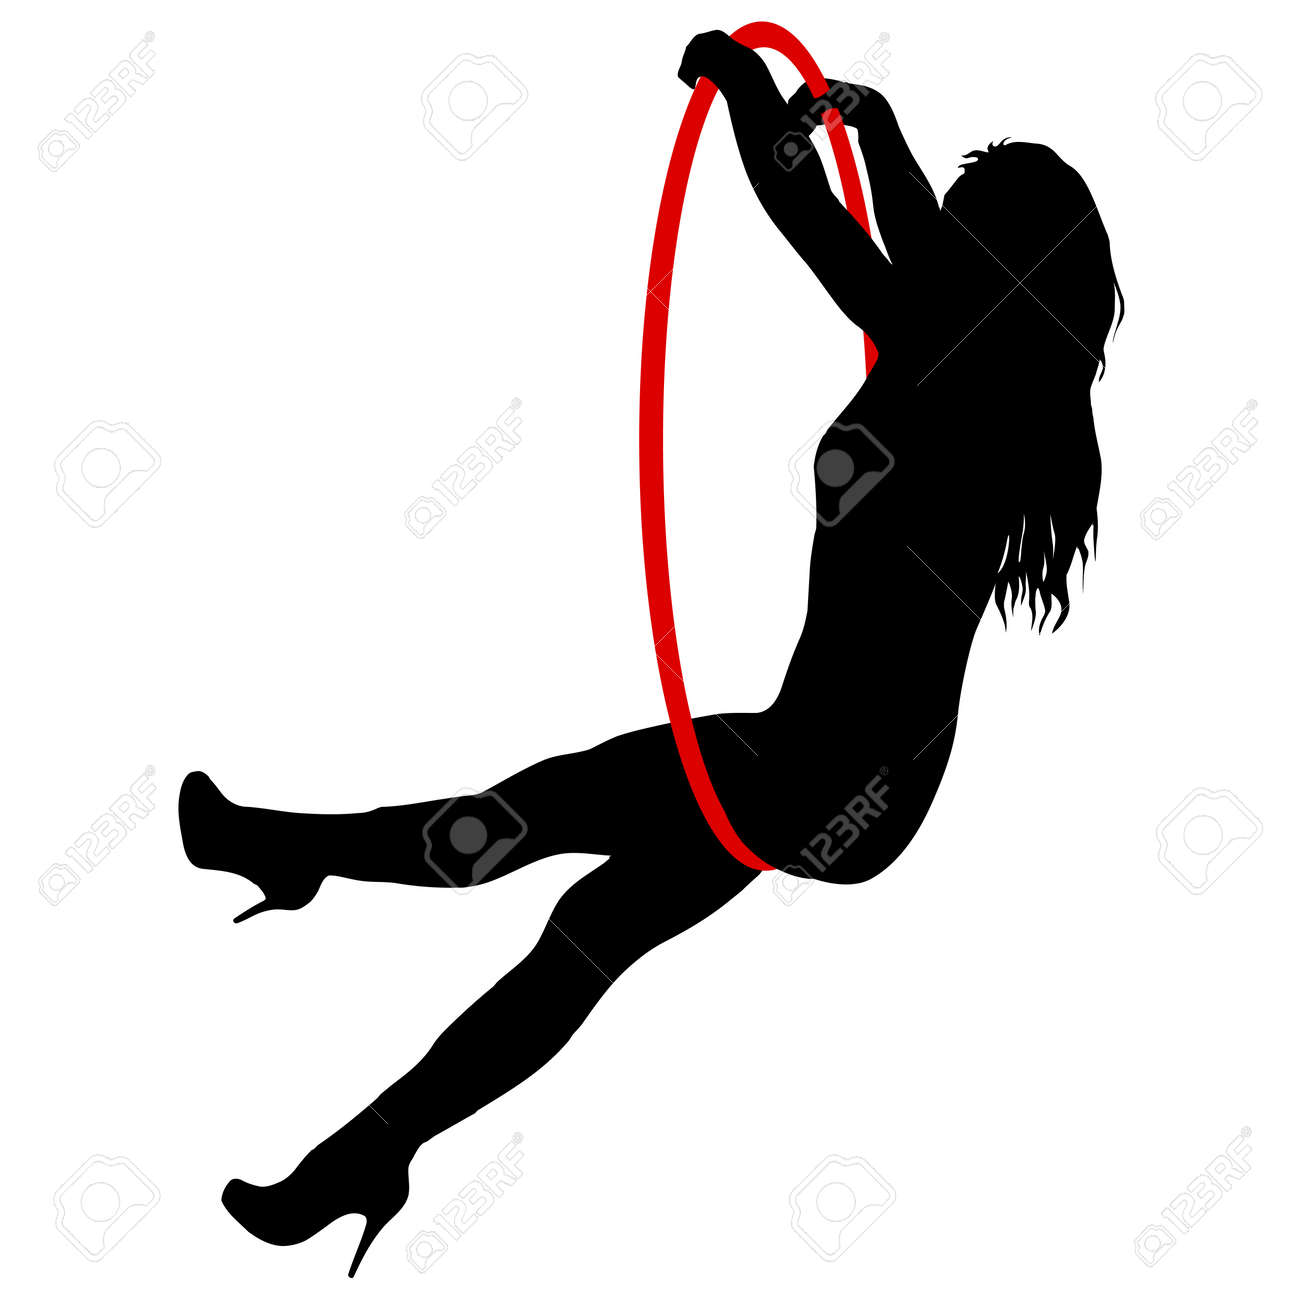 Silhouette woman doing some acrobatic elements aerial hoop on a white background. - 125805730